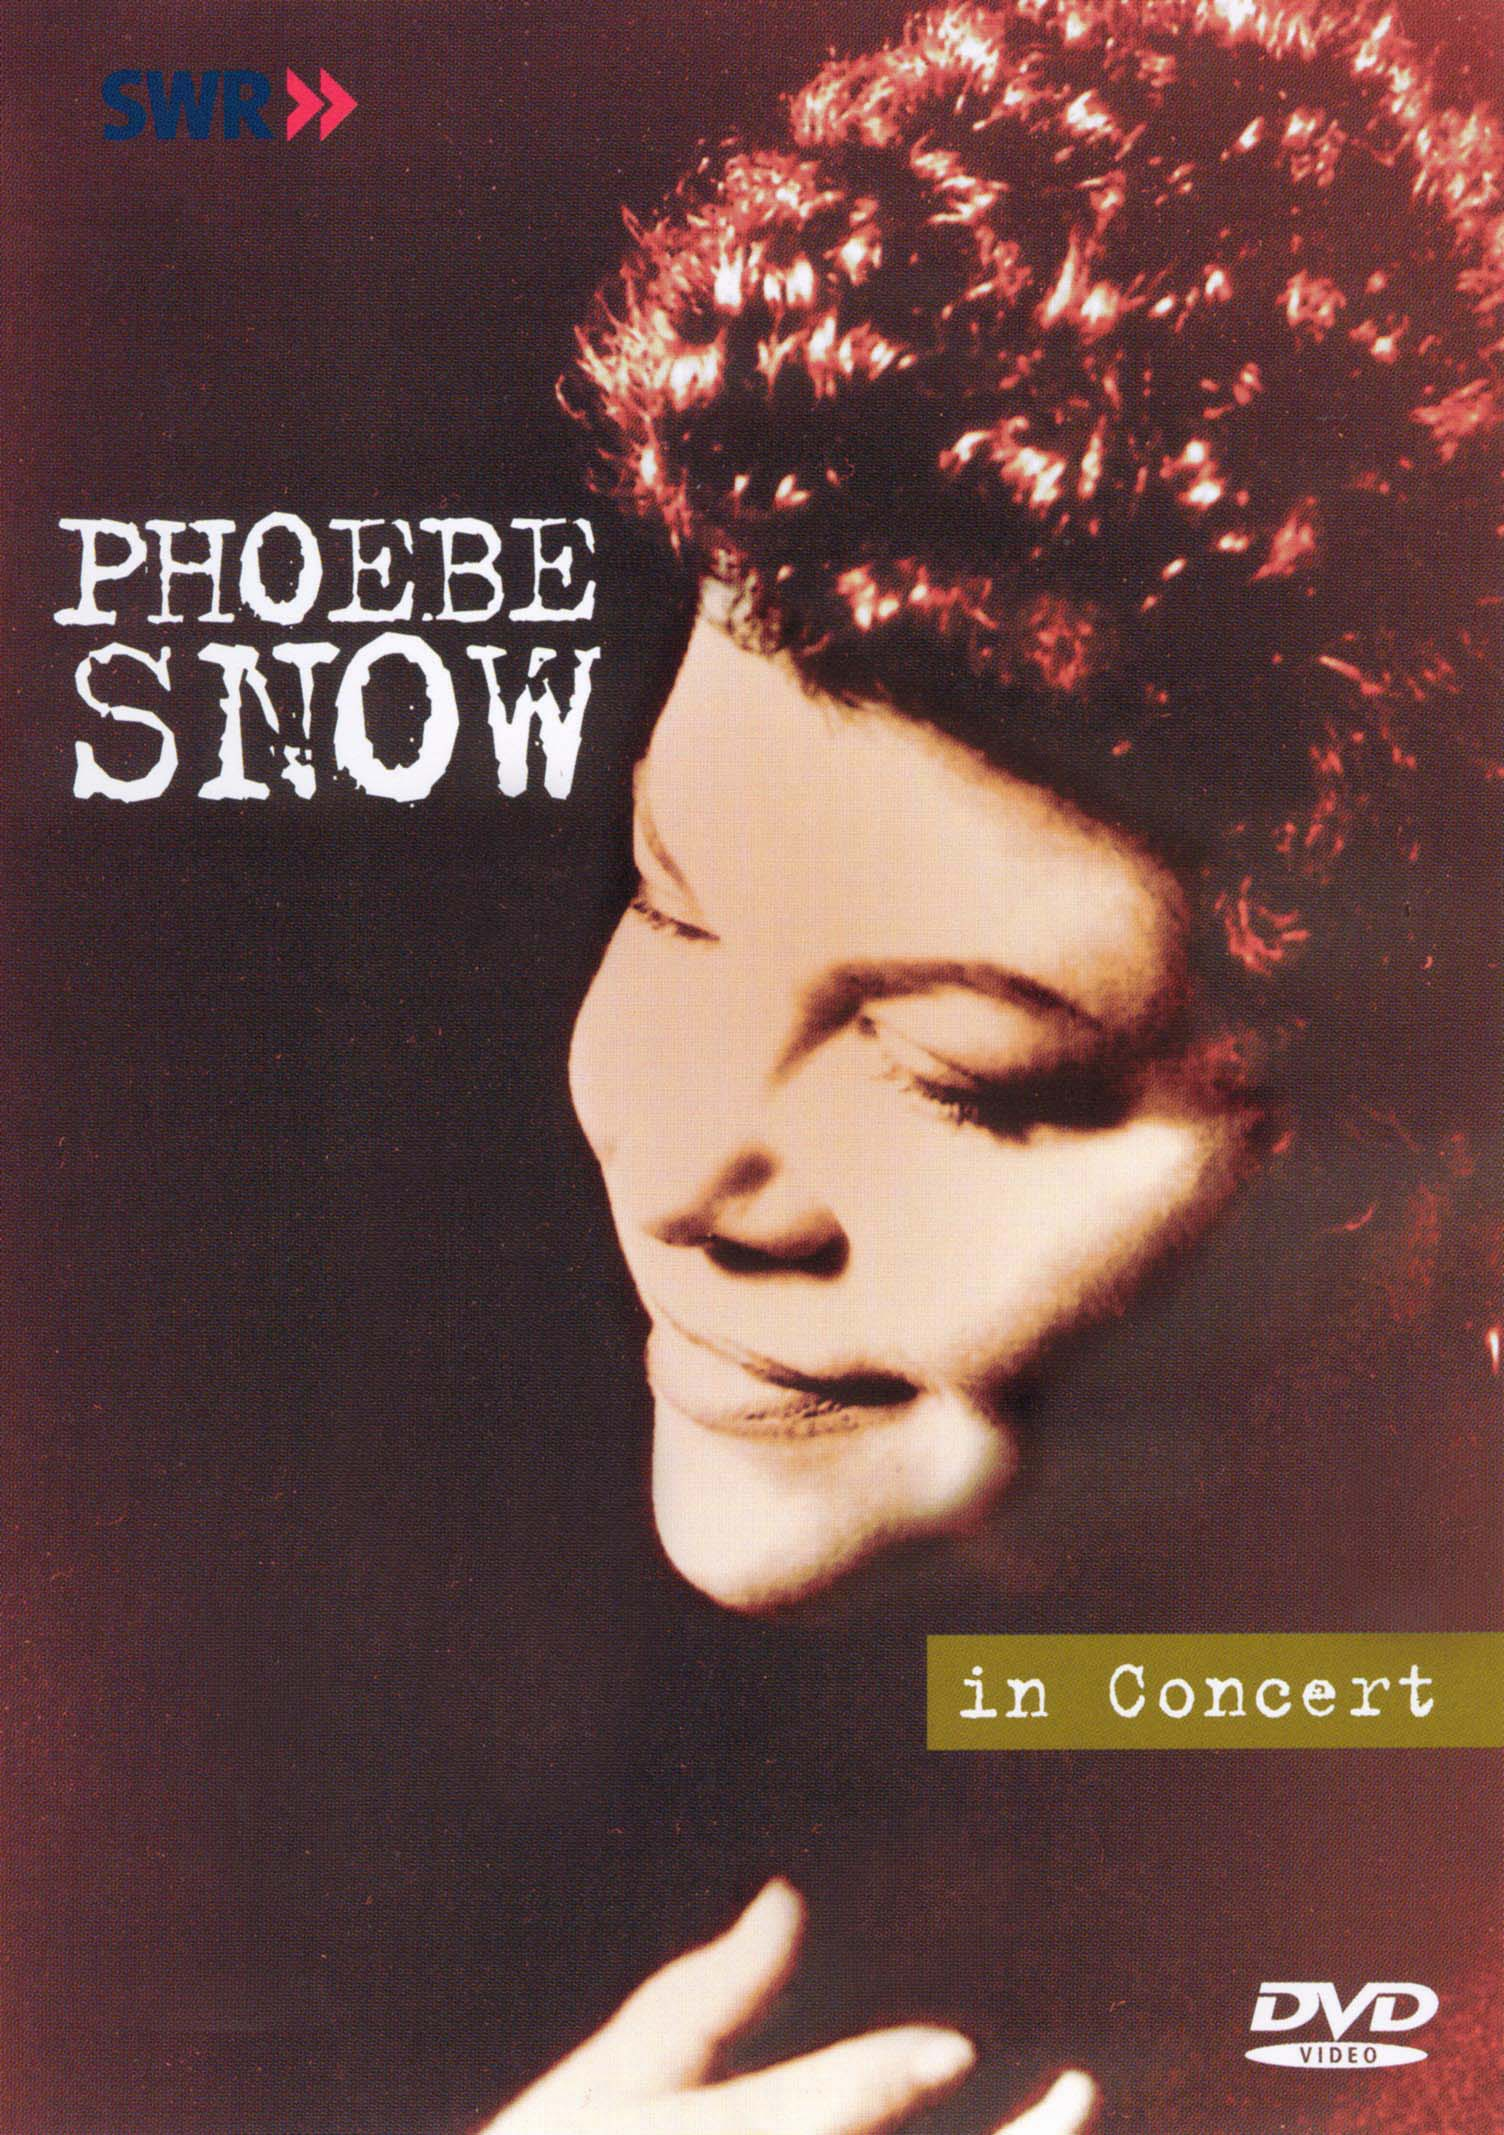 Ohne Filter - Musik Pur: Phoebe Snow in Concert